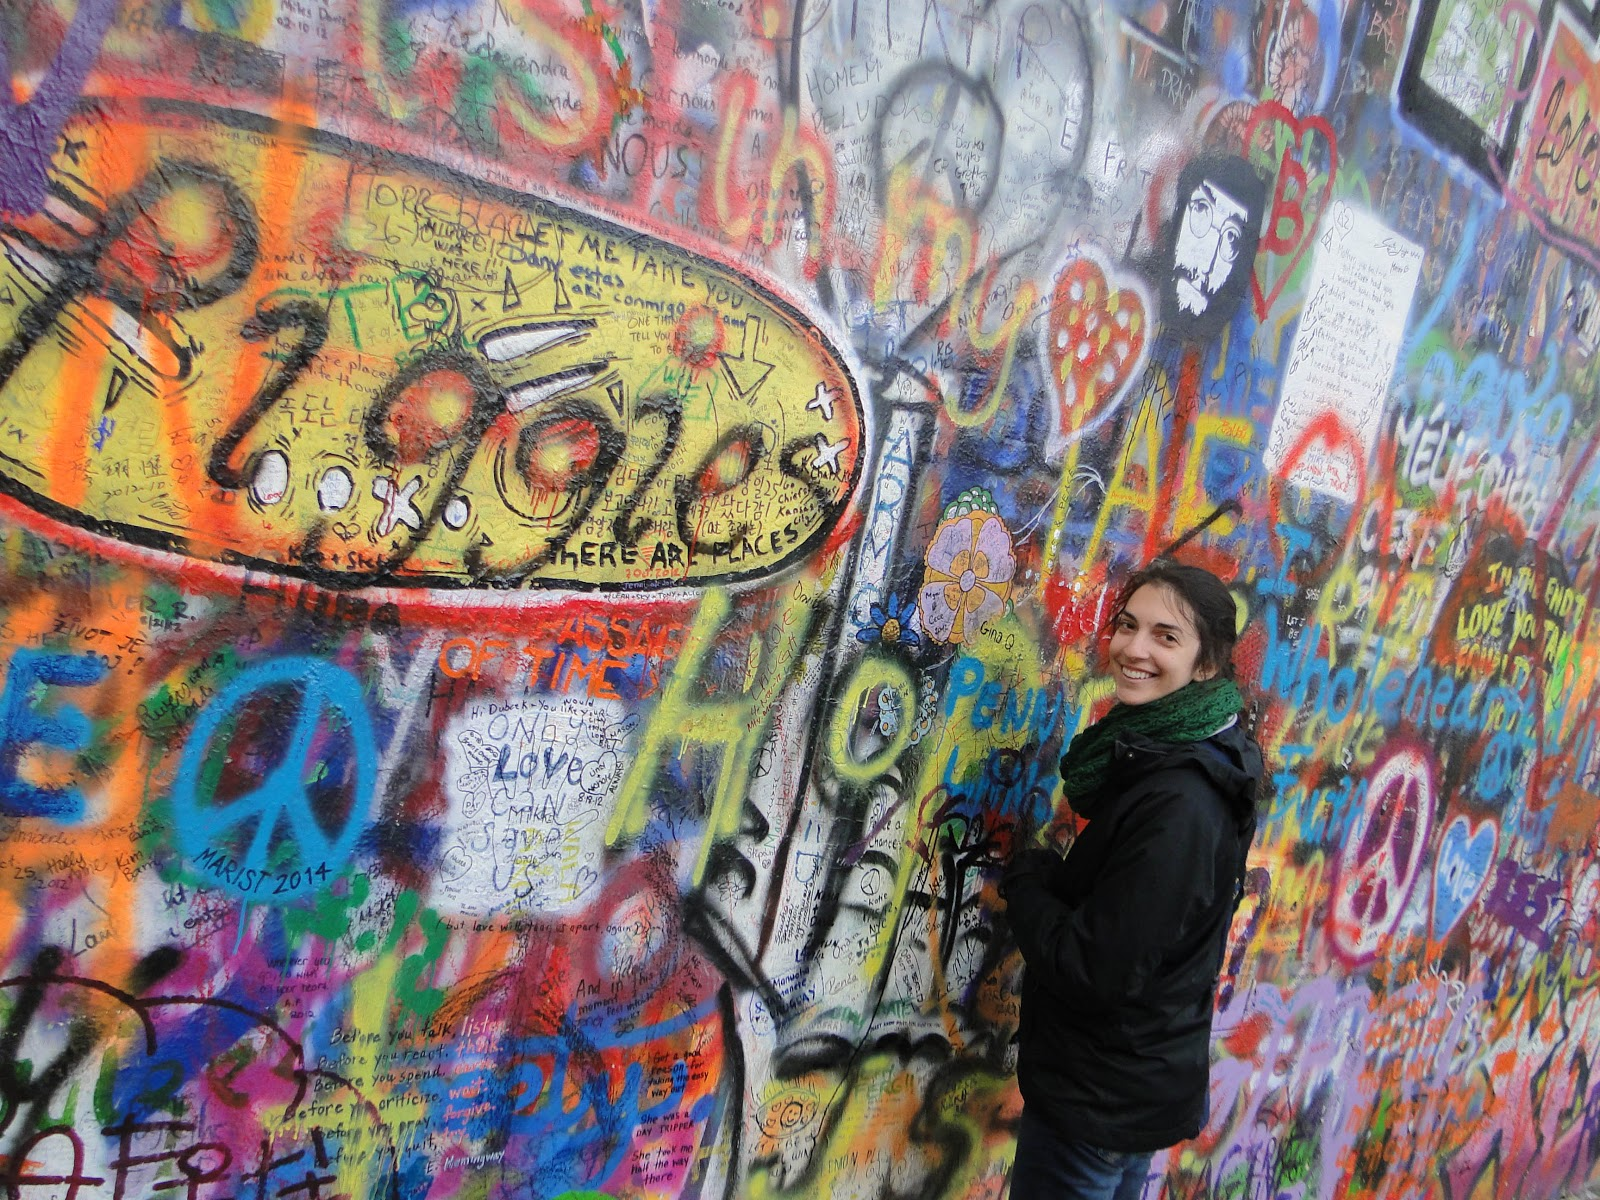 From the beatles yellow submarine i wanna hold your hand the john lennon wall is a place in prague where they commemorate his strong lyrics and